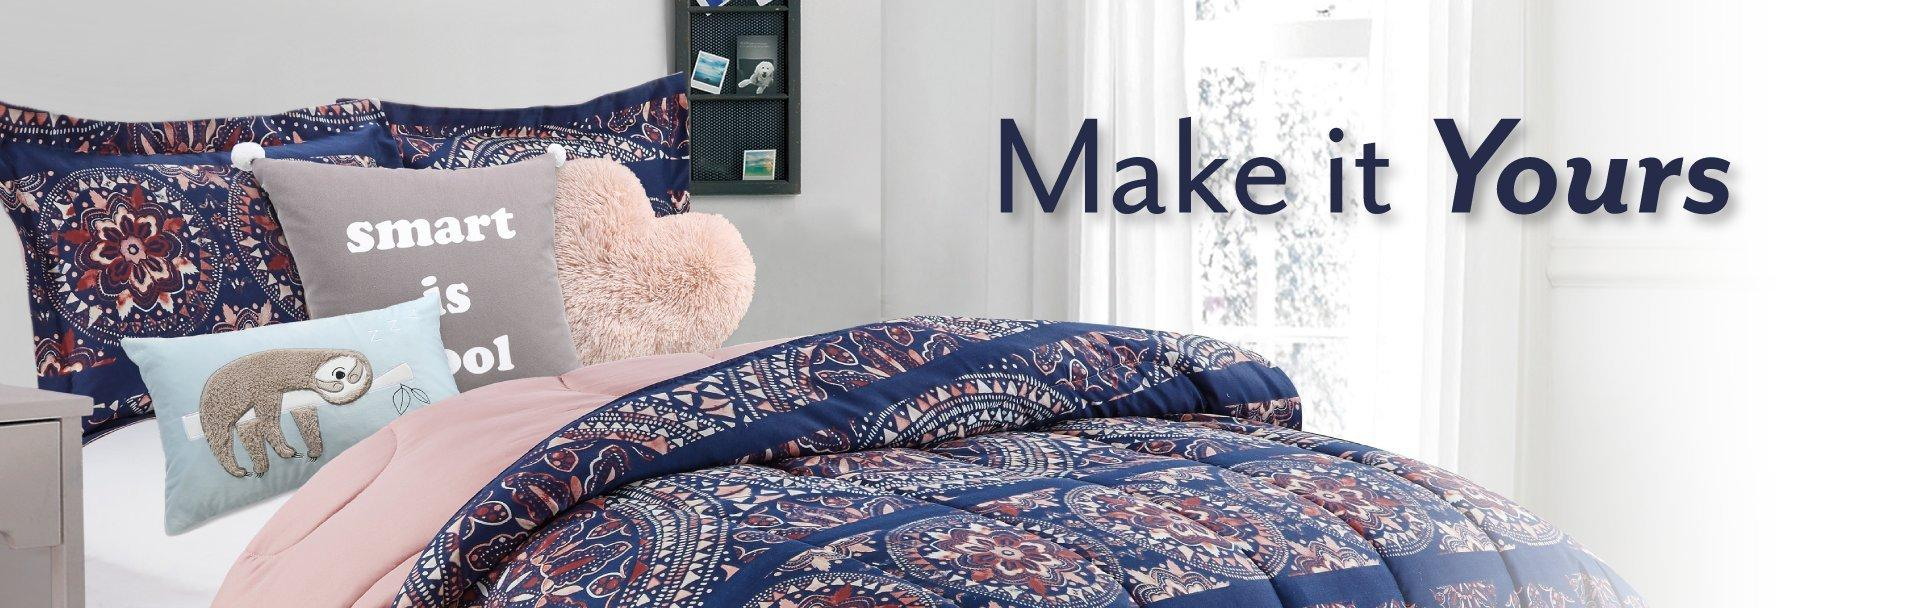 Bed & Bath Solutions at Burkes Outlet